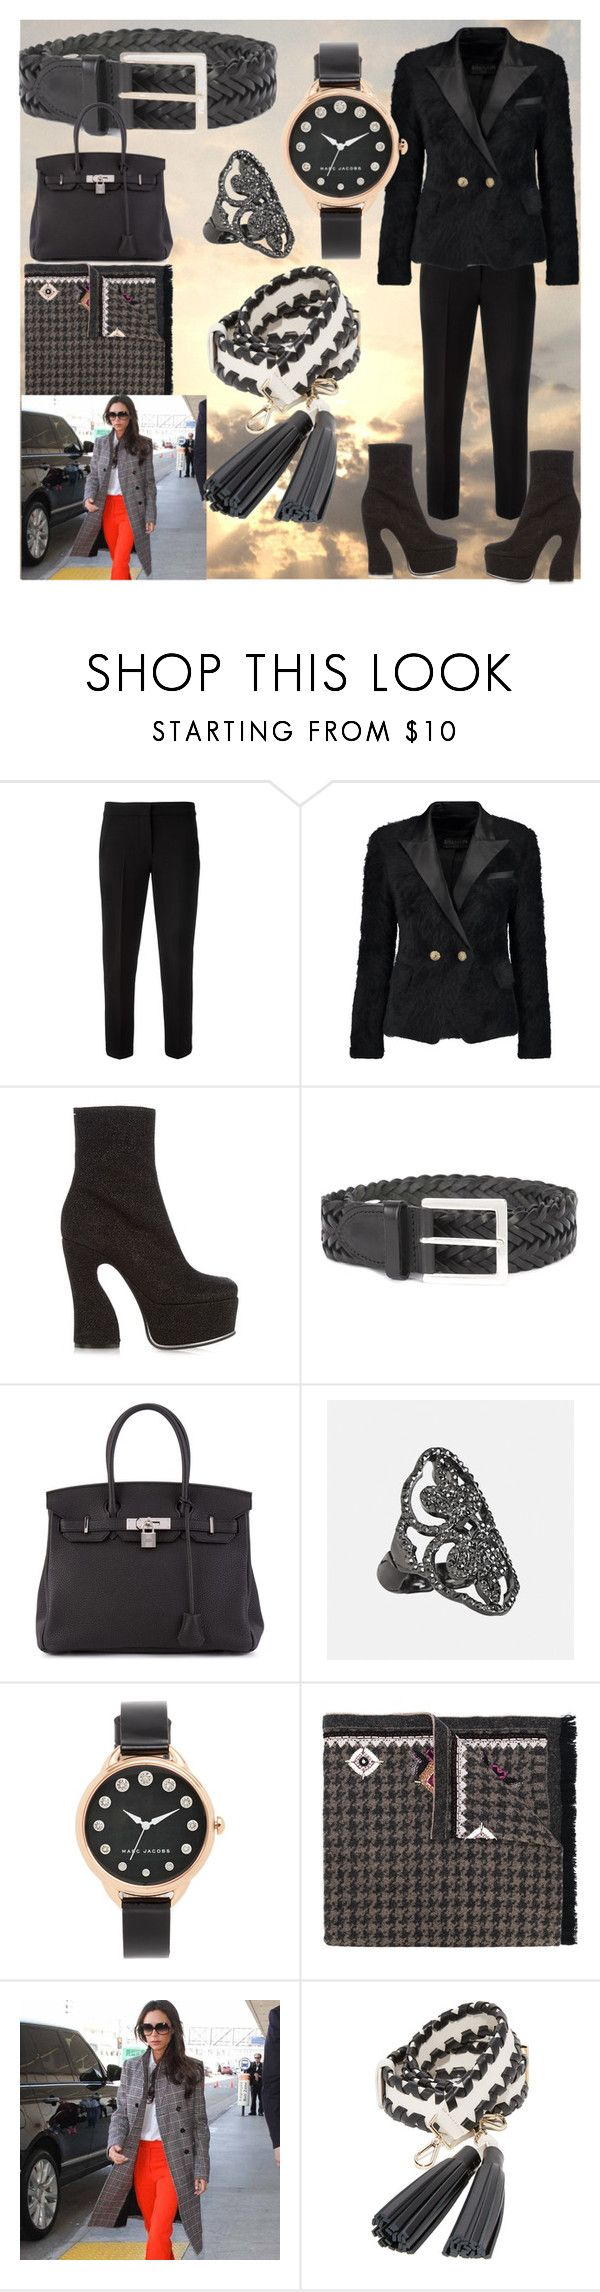 """set for amazing"" by denisee-denisee ❤ liked on Polyvore featuring MaxMara, Balmain, Maison Margiela, rag & bone, Hermès, Avenue, Marc Jacobs, Bazar Deluxe, Kate Spade and vintage"